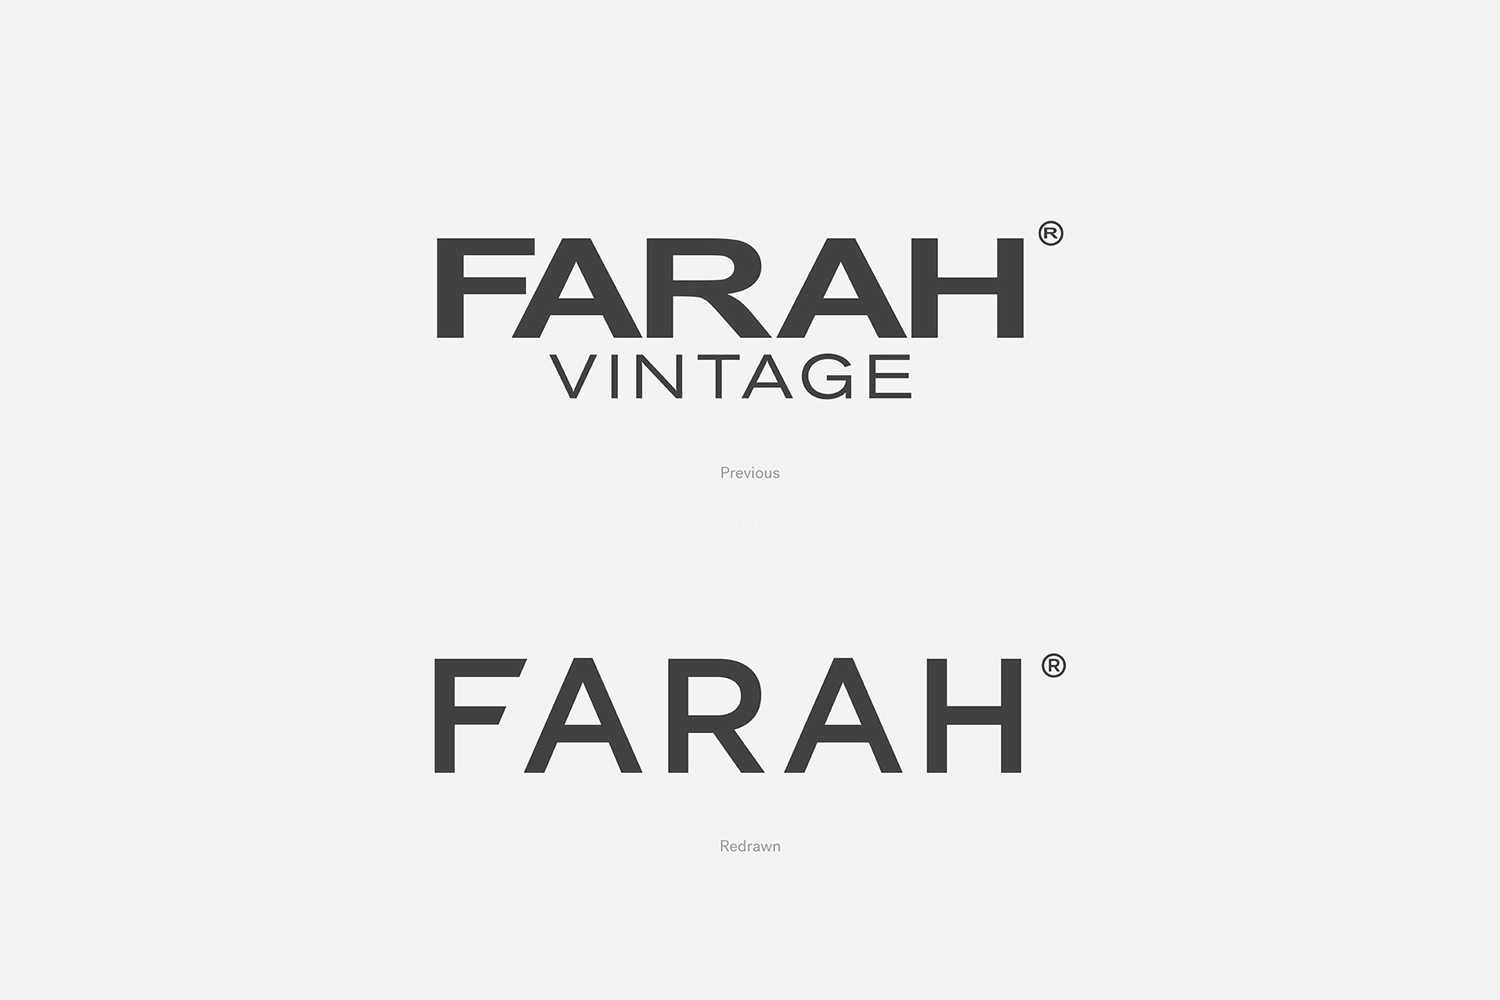 Logotype for UK men's fashion brand Farah Farah by graphic design studio Post